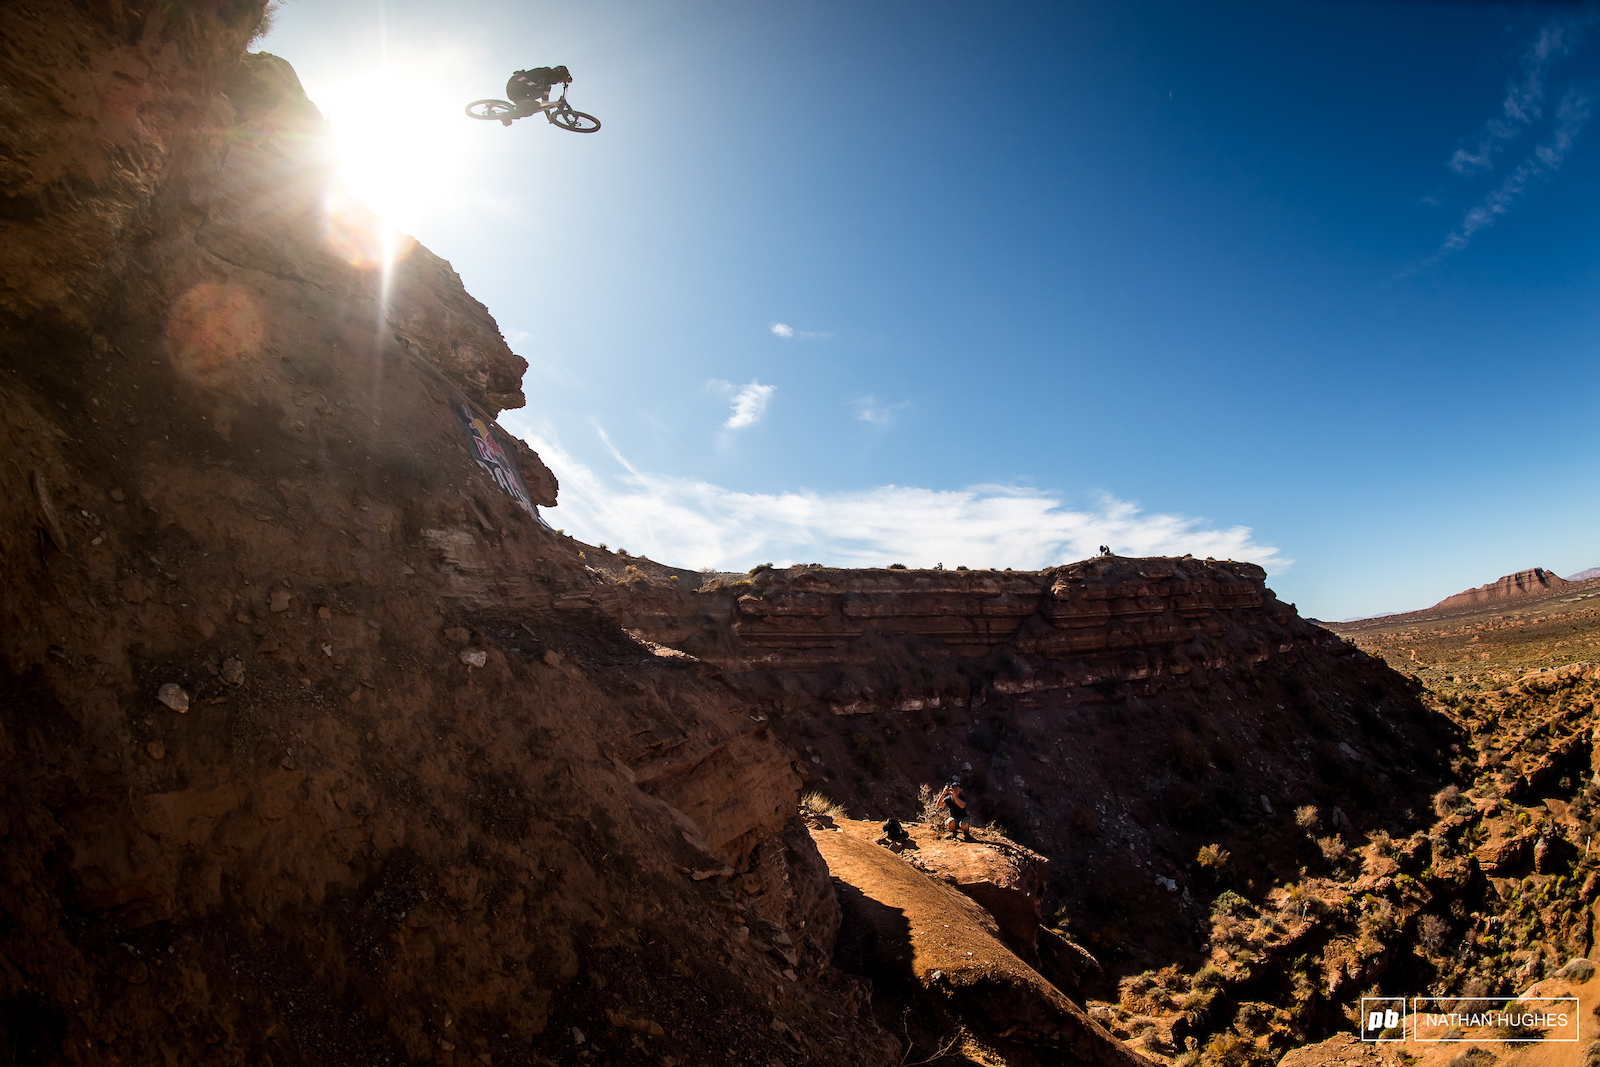 Cam Zink spotting his landing in the depths of the valley below.